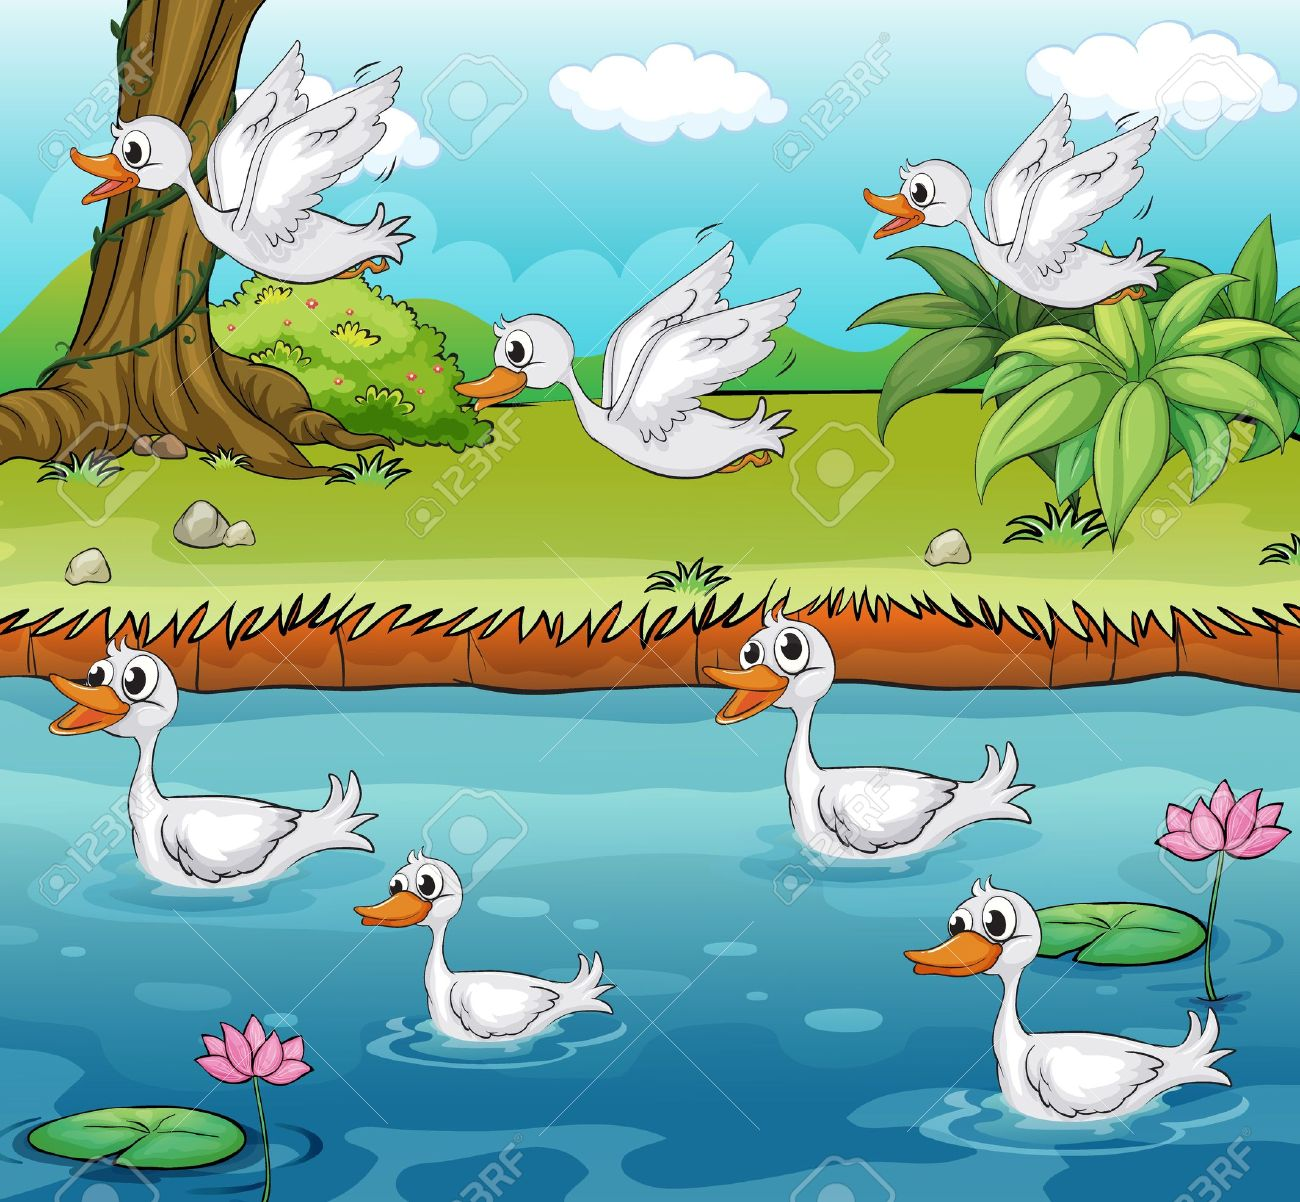 Illustration Of Swimming And Flying Ducks On A Colorful.